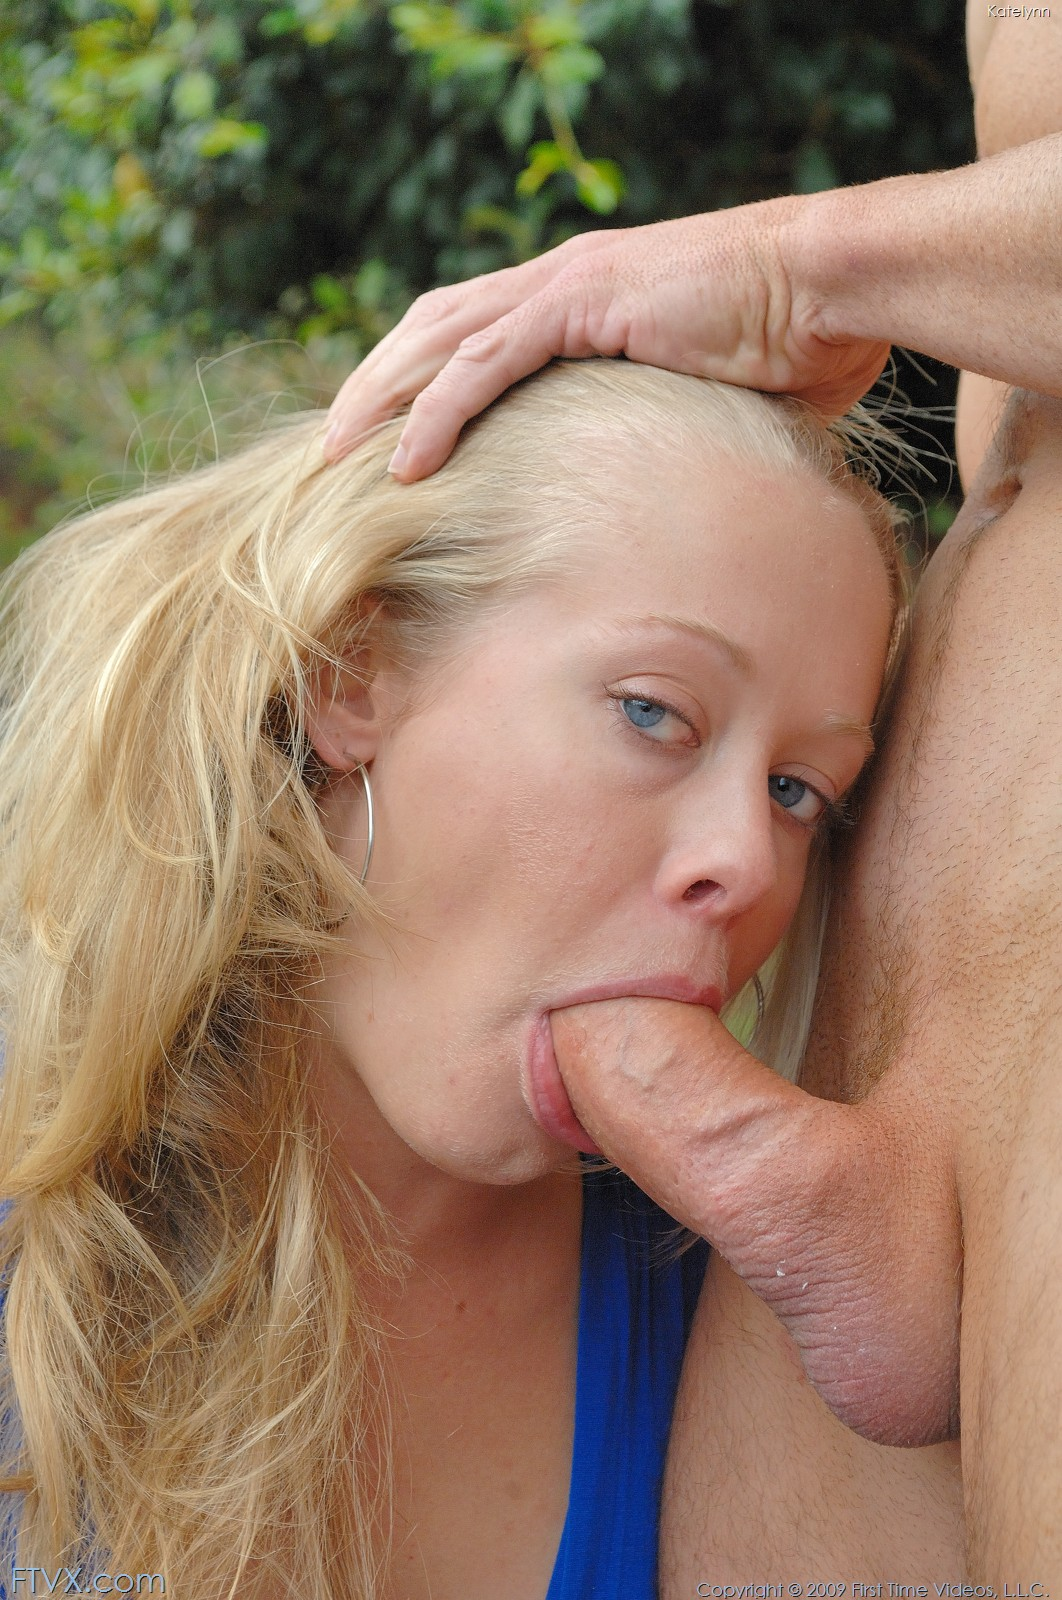 Anal creampie threesome compilations